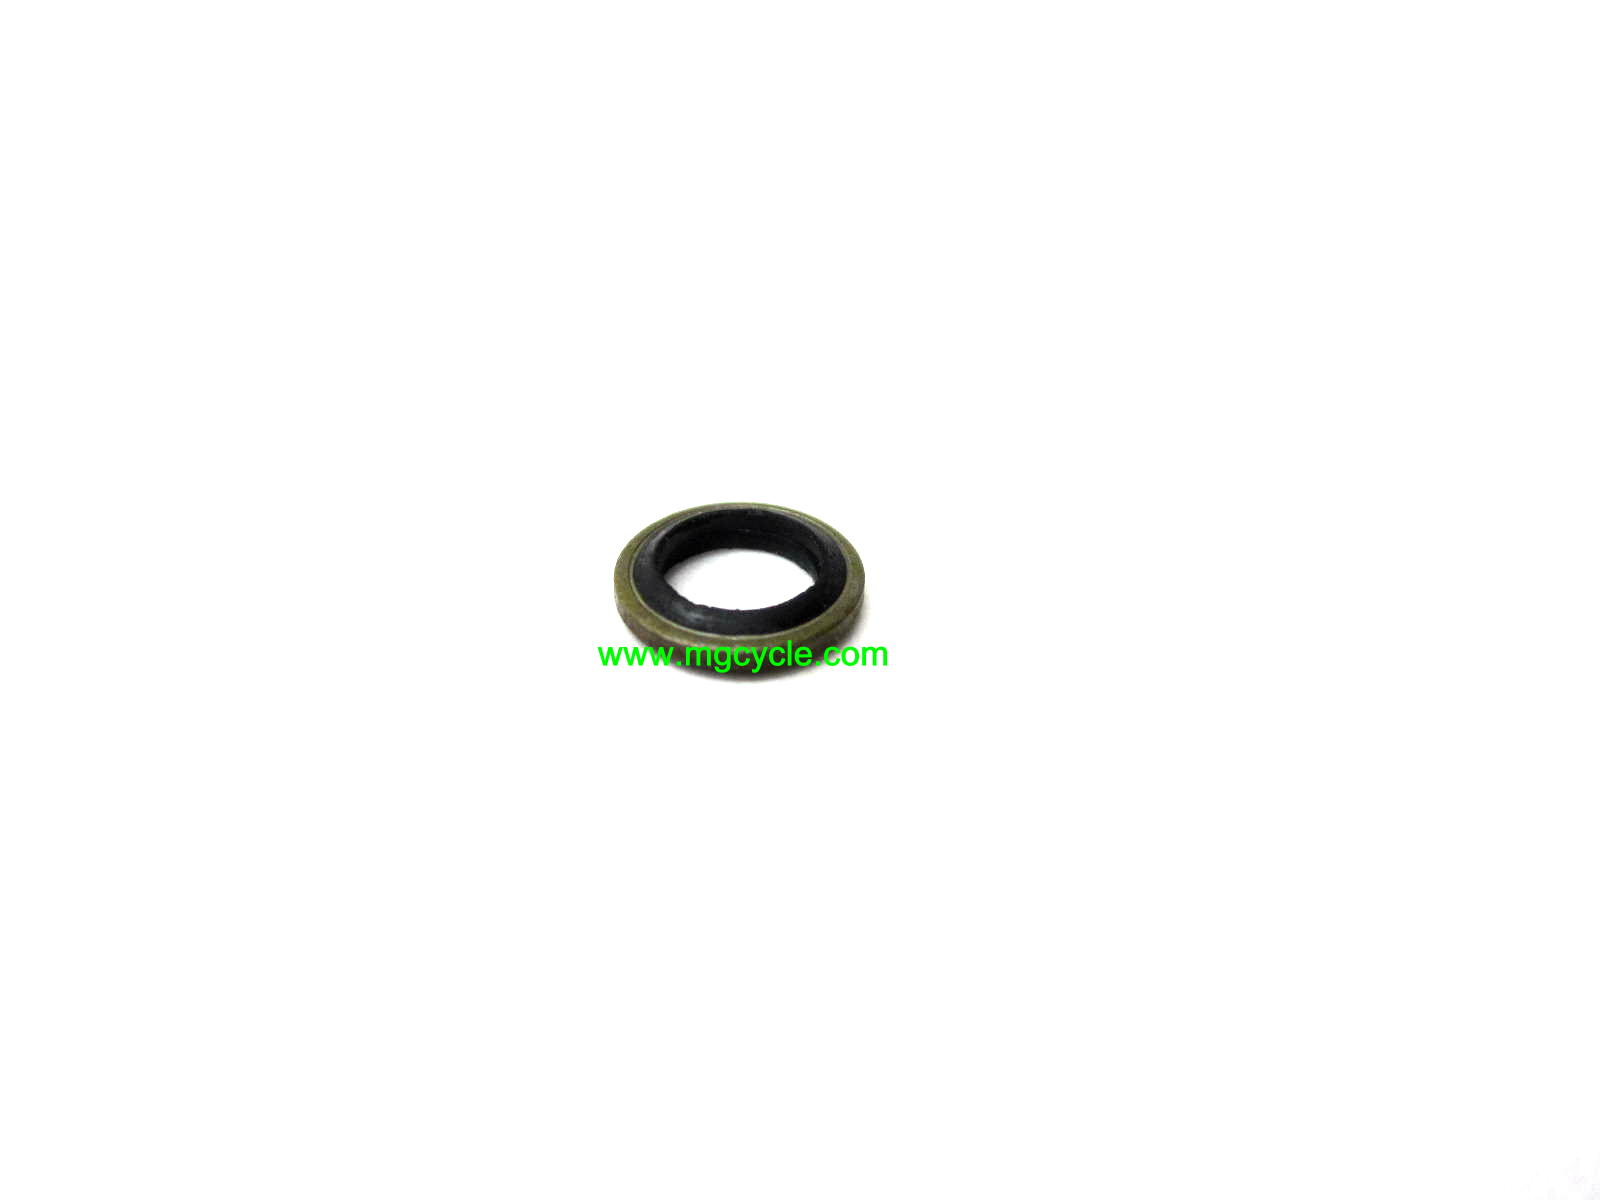 rubber center sealing washer 6mm fork drain, fuel inlet etc 6x10